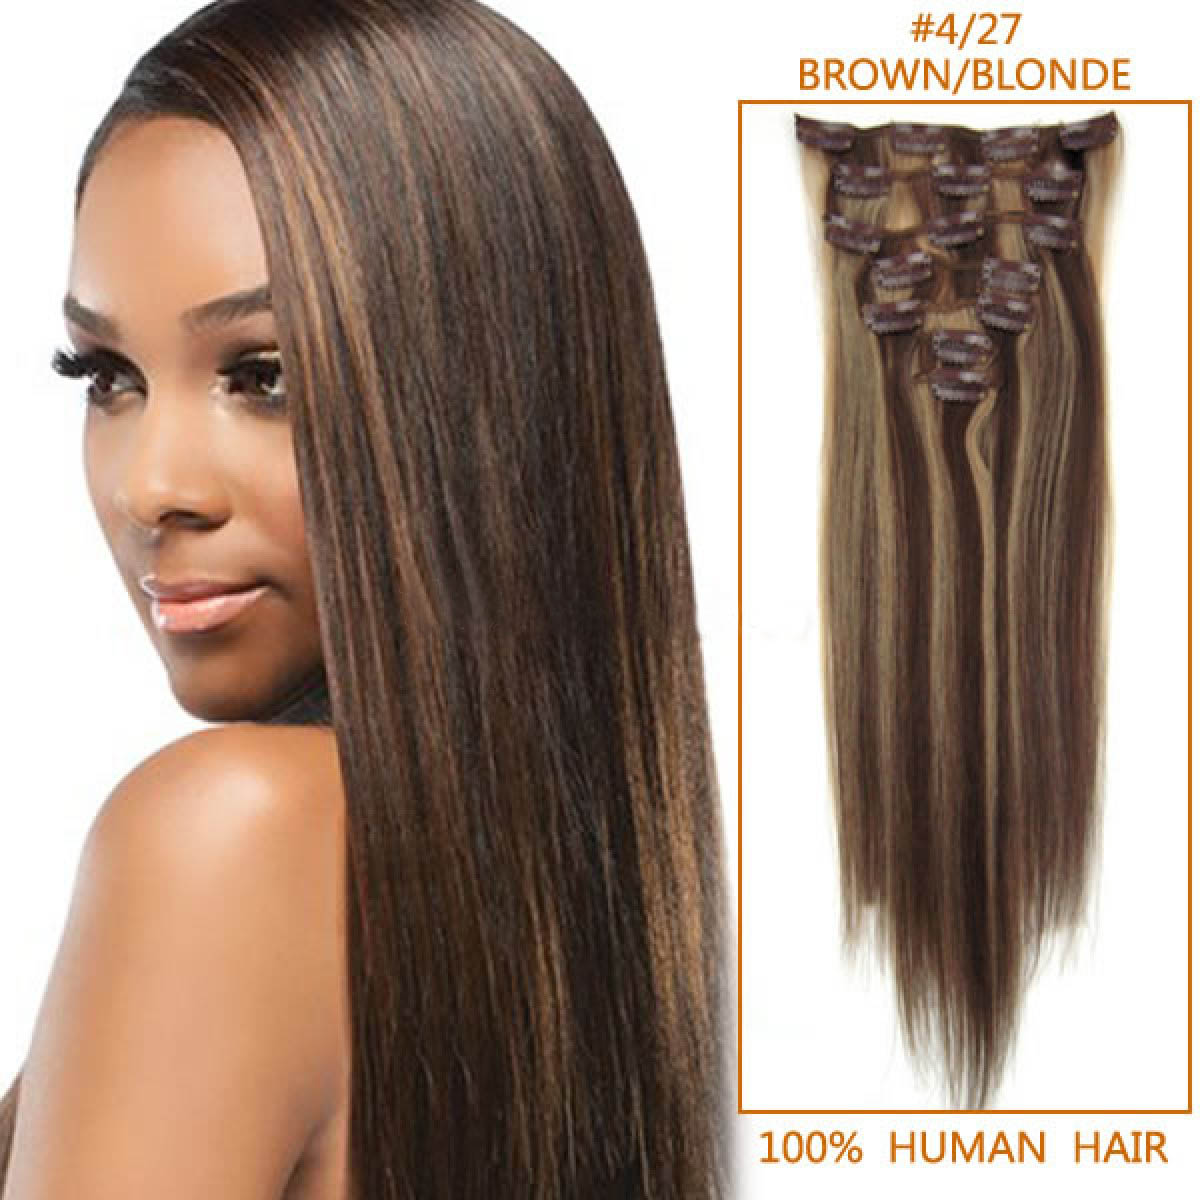 20 Inch 427 Brownblonde Clip In Remy Human Hair Extensions 7pcs